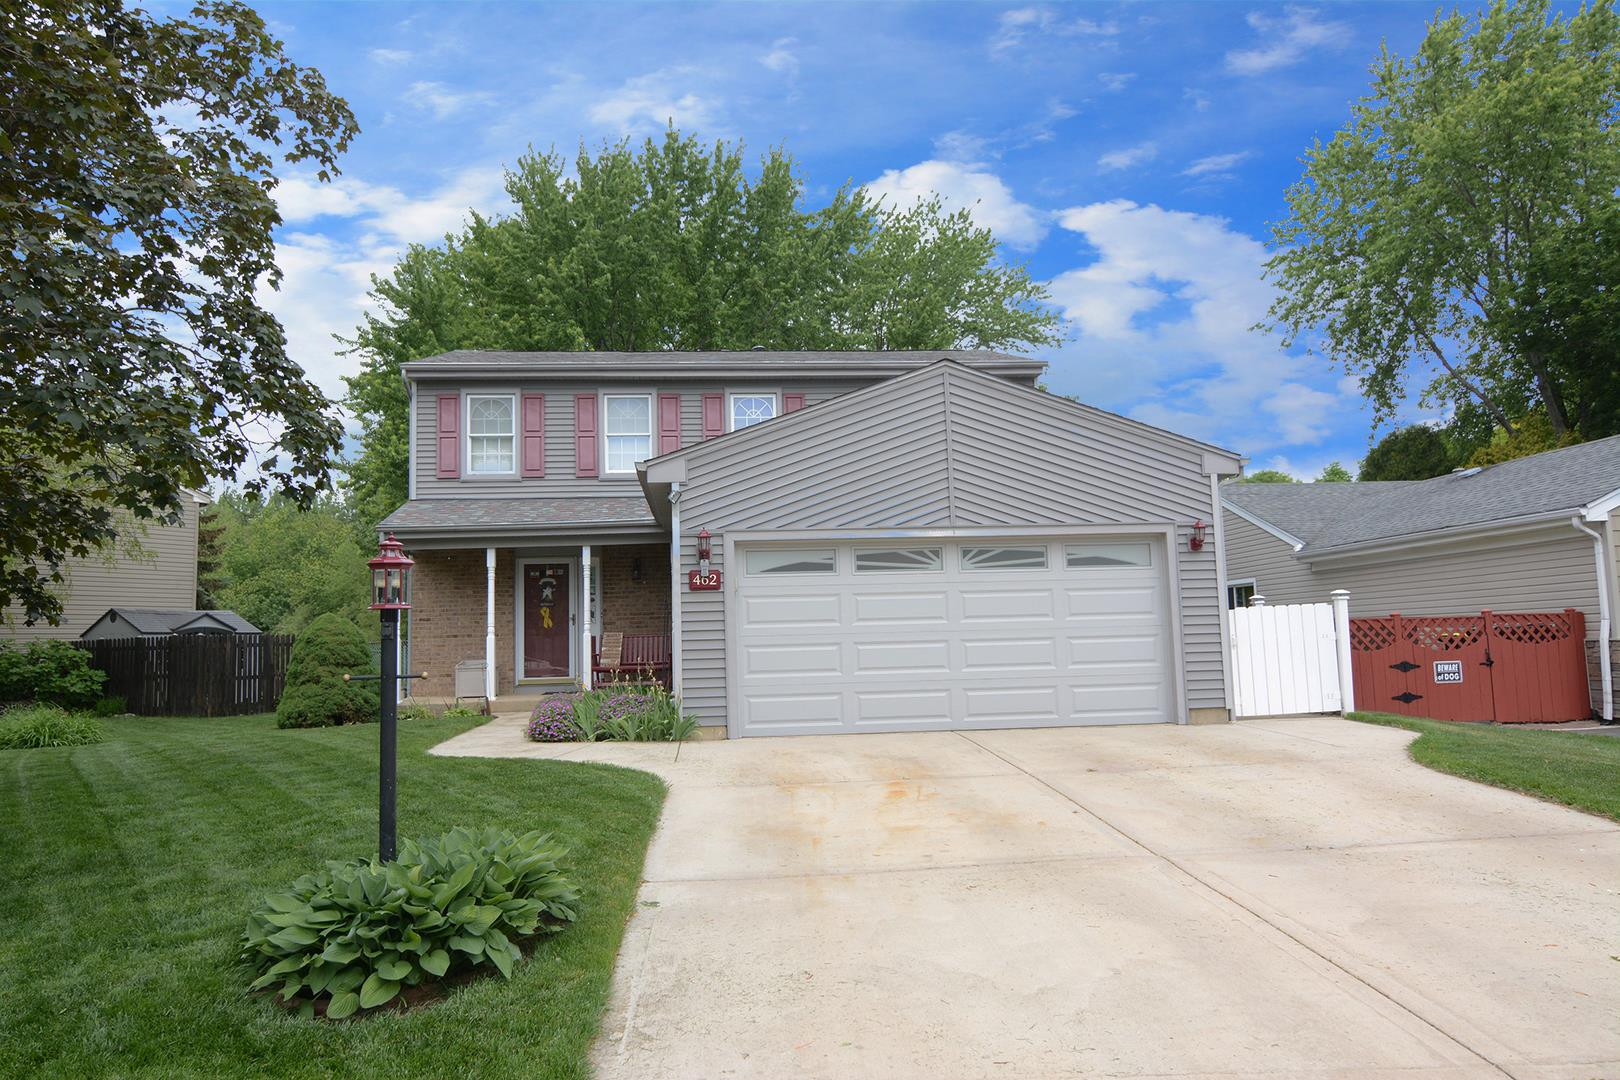 462 Glenmore Place, Roselle, IL 60172 - #: 11165369